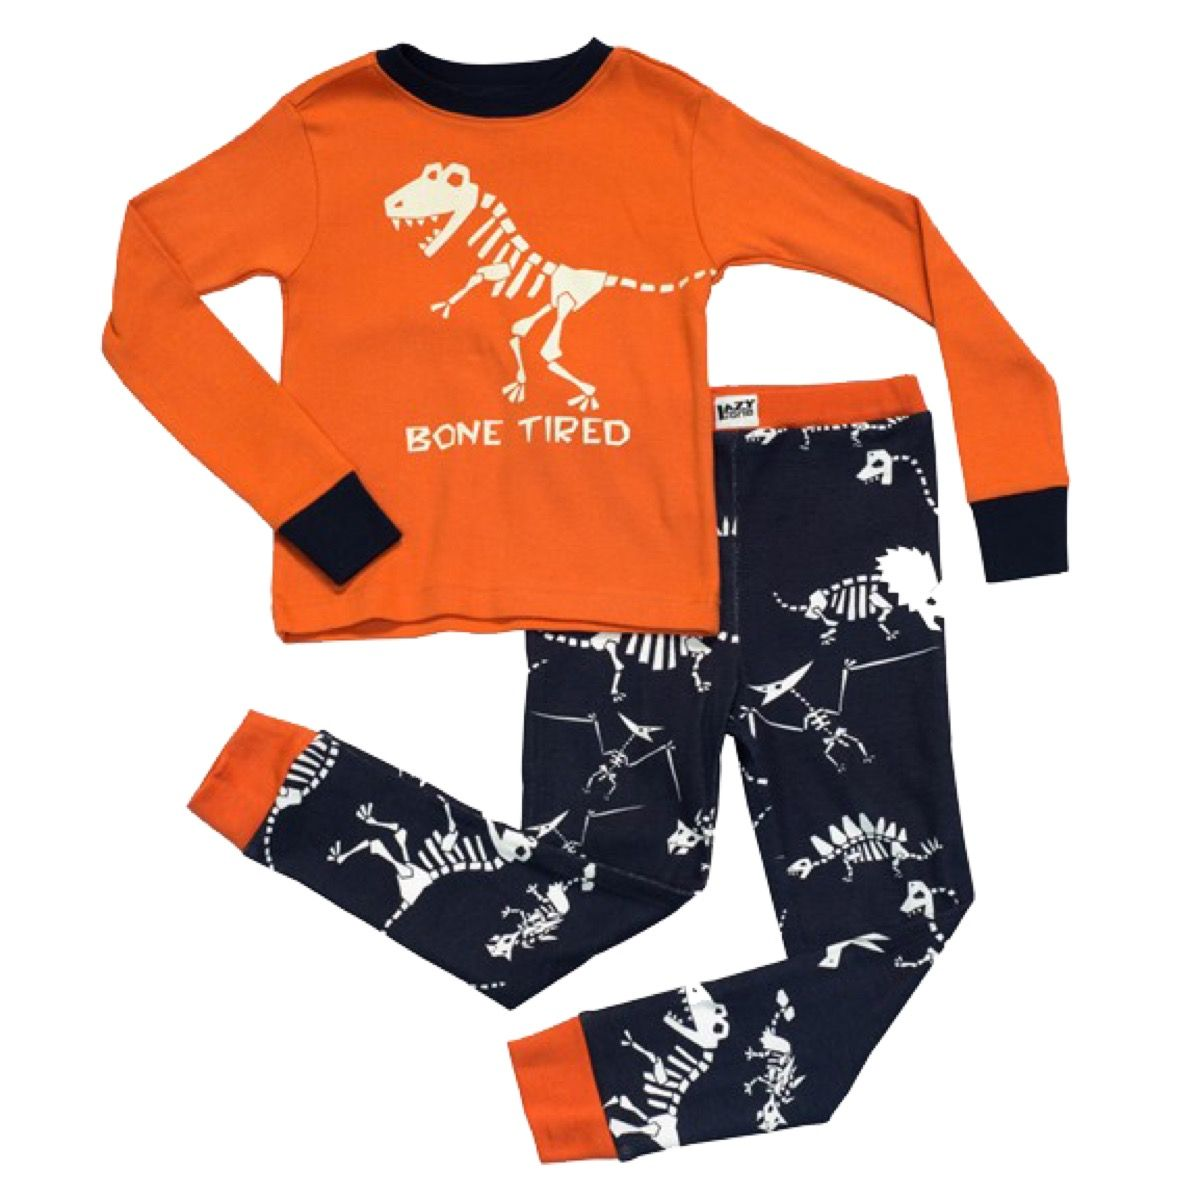 Bone Tired Kids Long Sleeve Pyjama Set Kids fashion